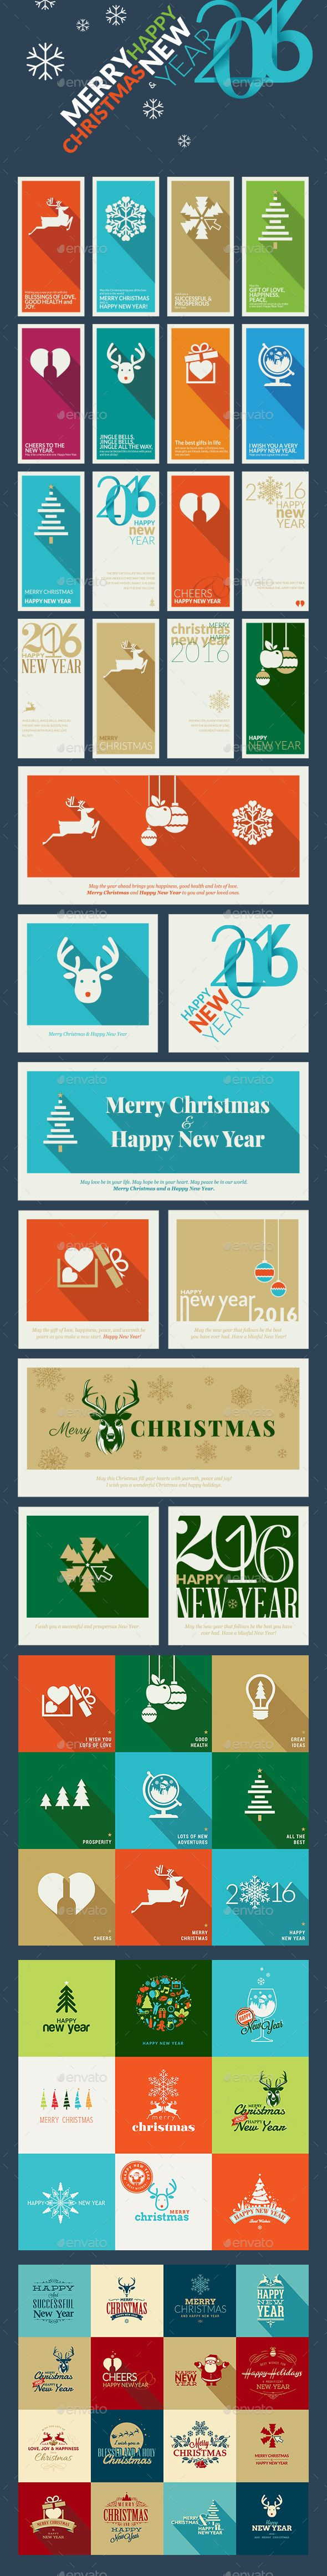 187 best christmas images on pinterest christmas cards christmas flat design christmas and new year greeting cards spiritdancerdesigns Image collections